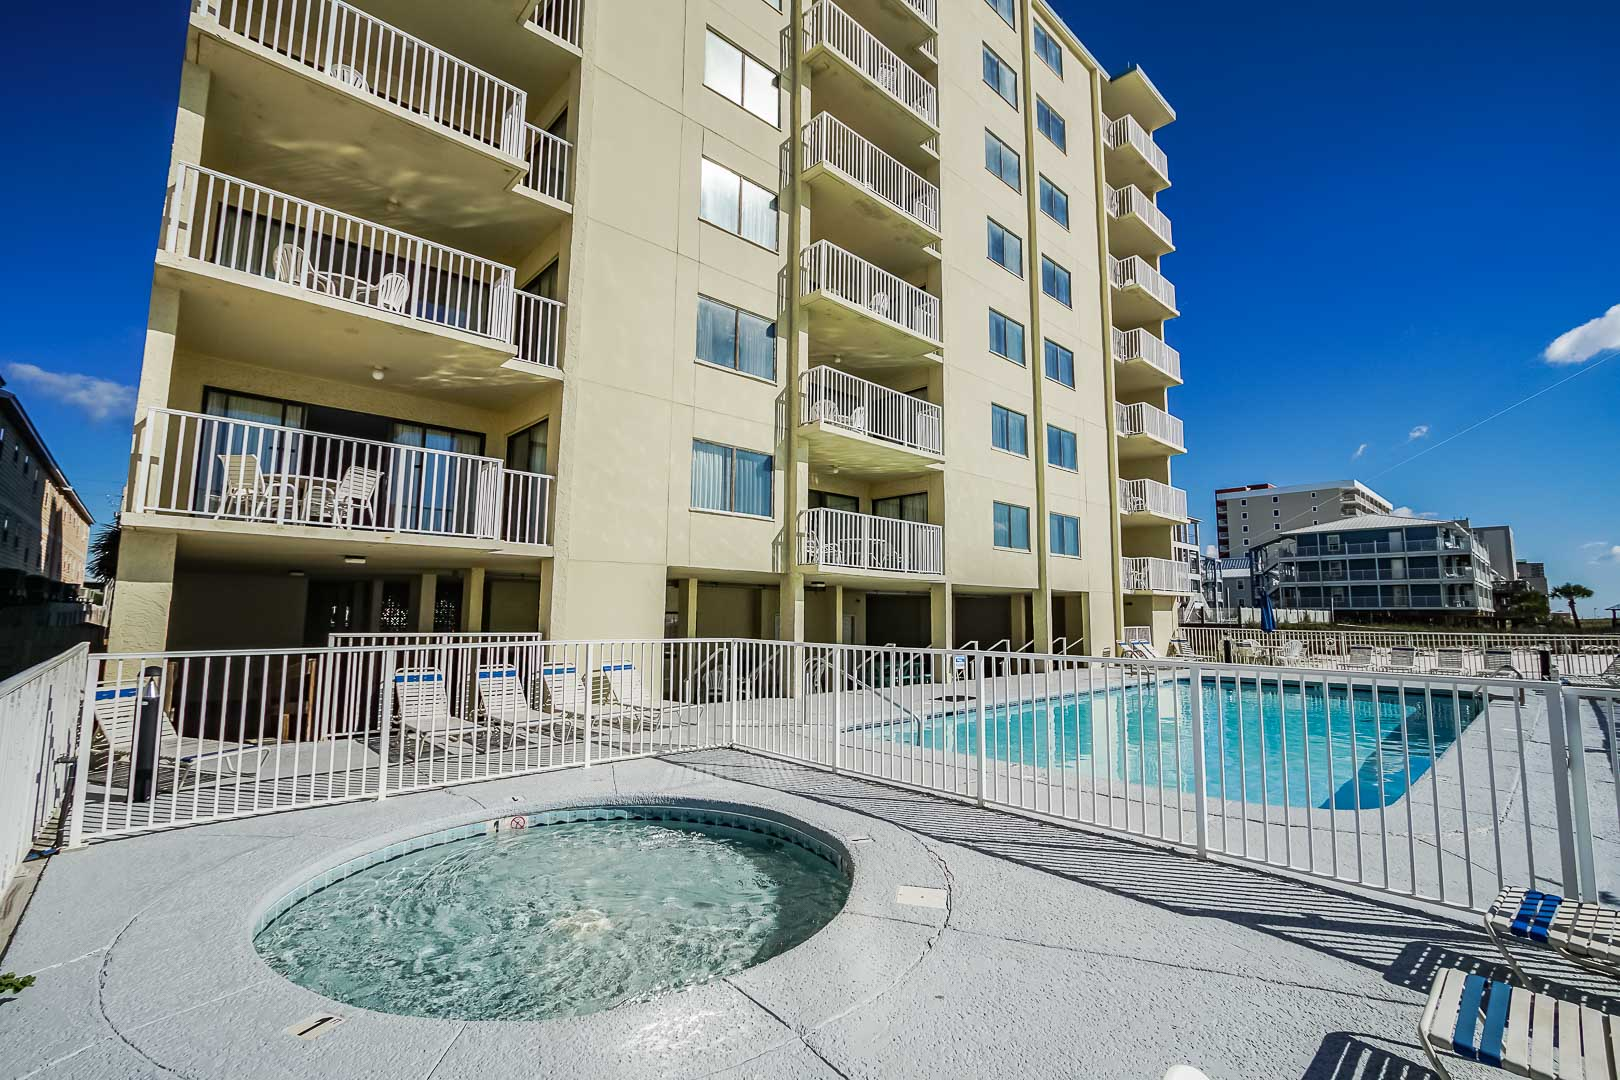 A view of the outside pool and Jacuzzi at VRI's Shoreline Towers in Gulf Shores, Alabama.